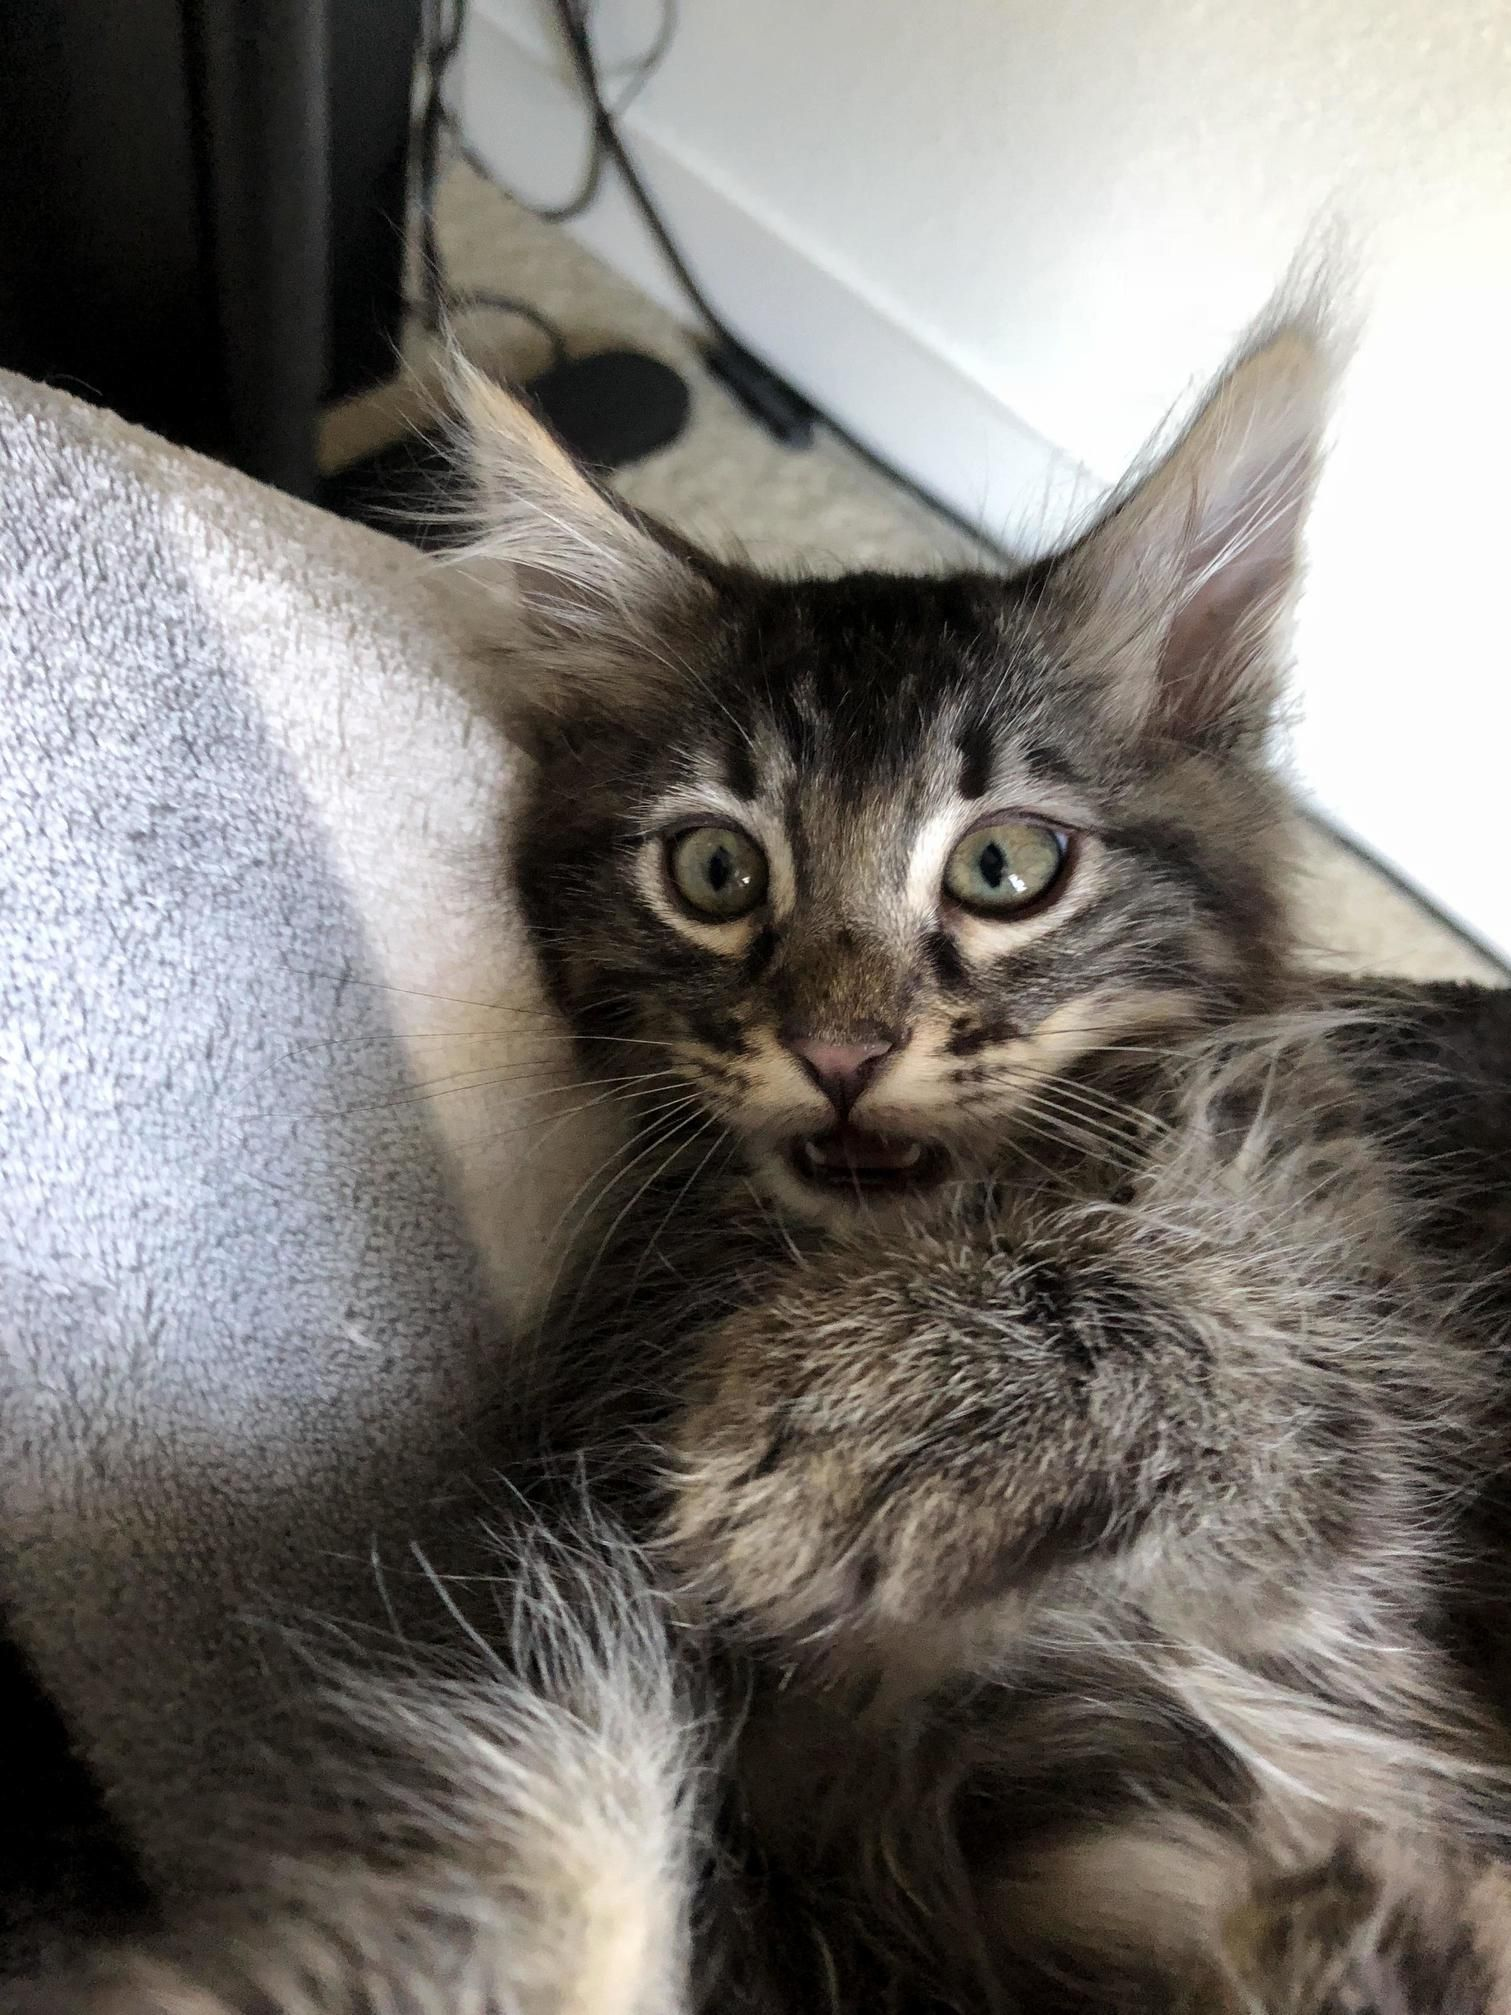 My kitten was not happy about being woken up Cute cats